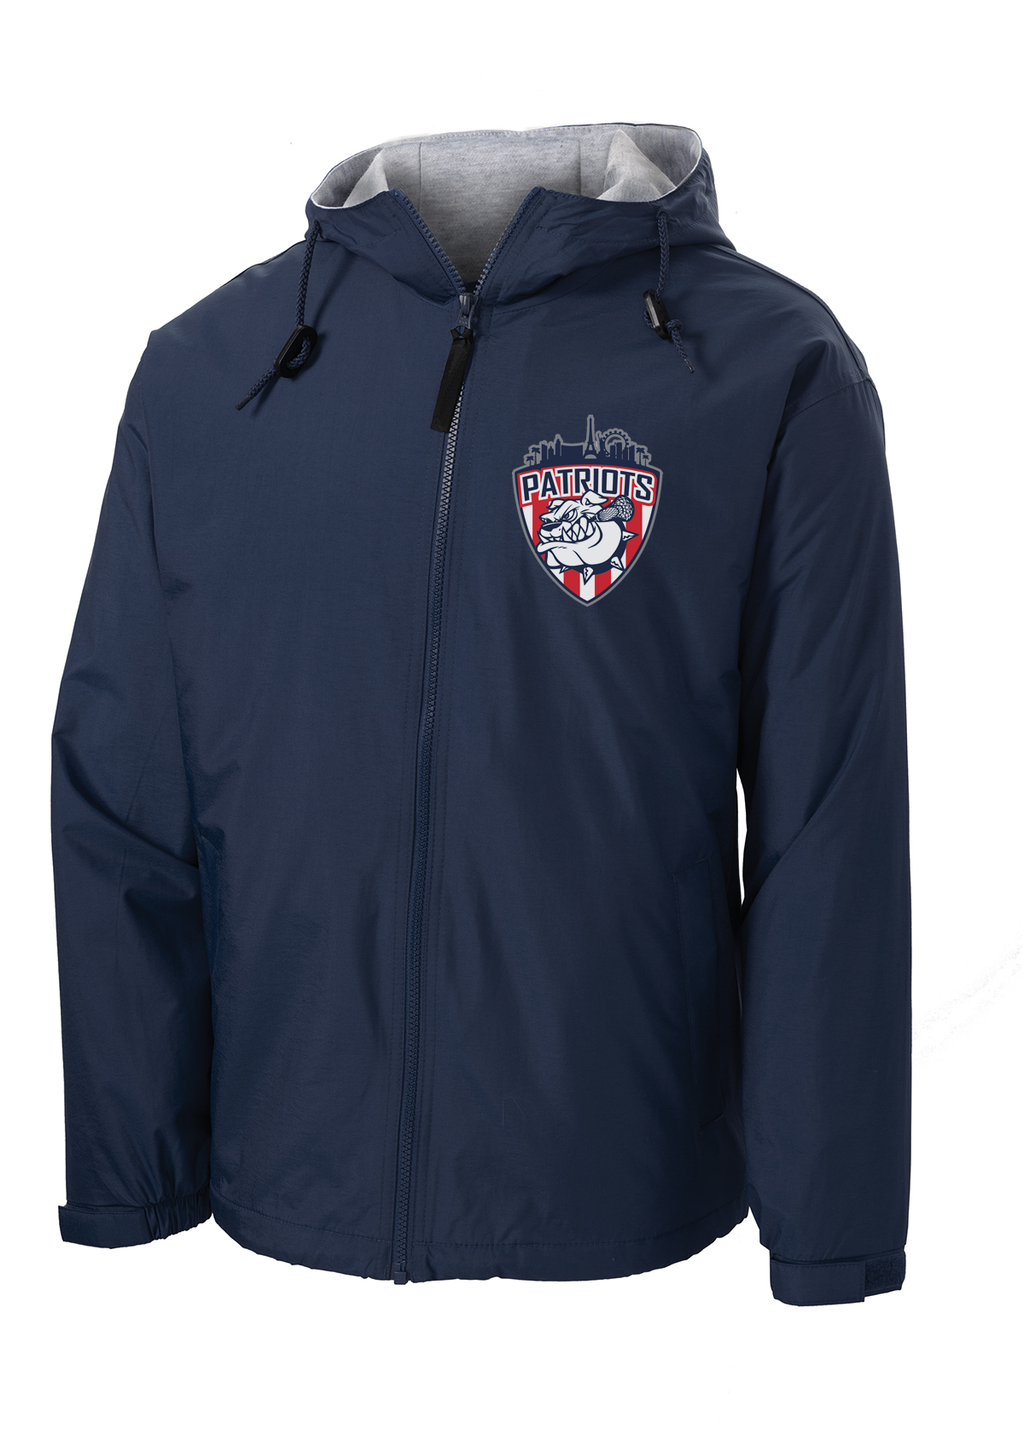 Las Vegas Patriots Hooded Jacket